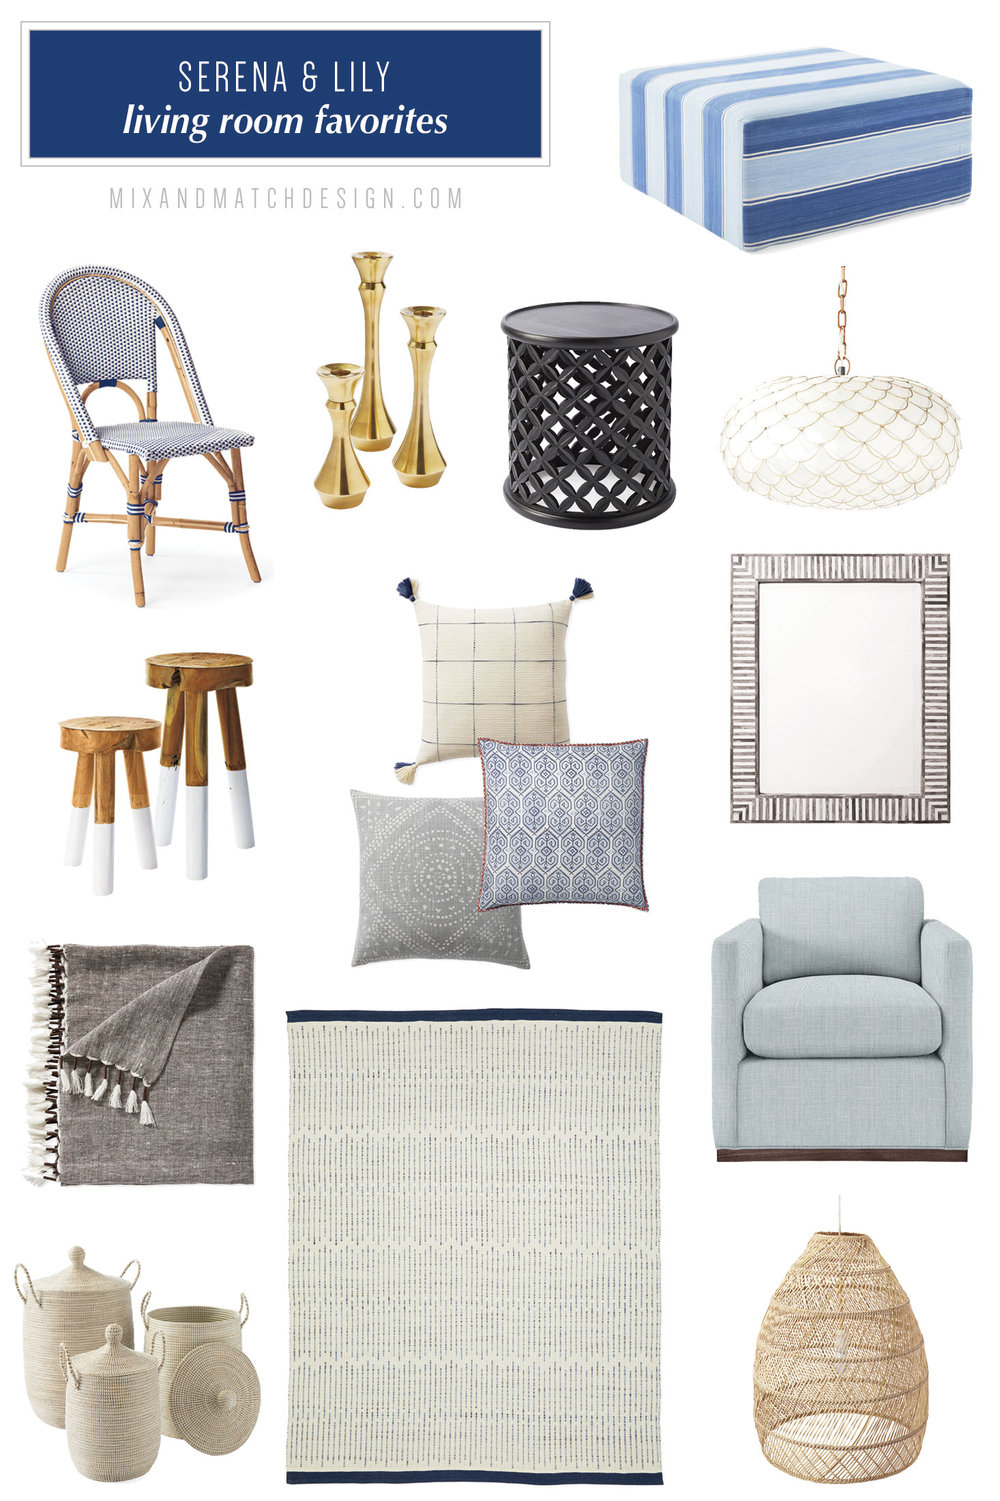 Serena & Lily is one of my favorite places to shop for modern coastal decor and I've rounded up a bunch of my favorites from their collection for the living room to share with you! They have an amazing selection of fresh, tailored furniture and home decor for every room in your home. // #designerfinds #interiordesign #decor #moderncoastal